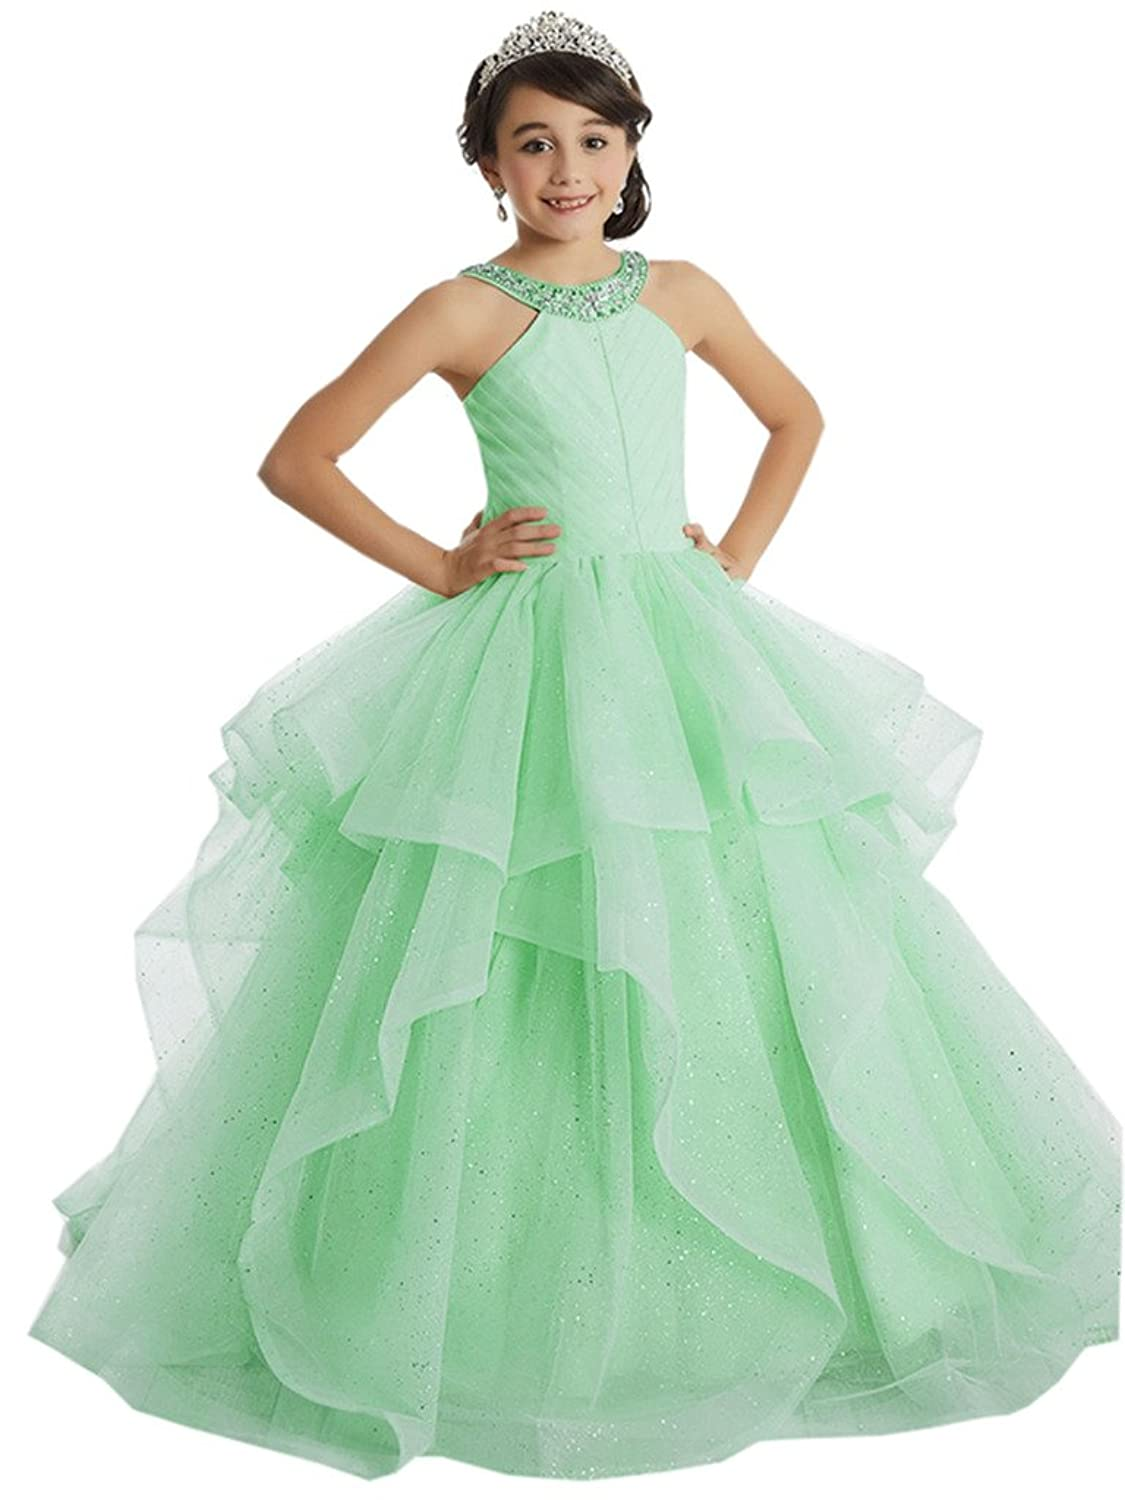 Big Girl's Organza Ruffle Halter Ball Gown Pageant Dresses